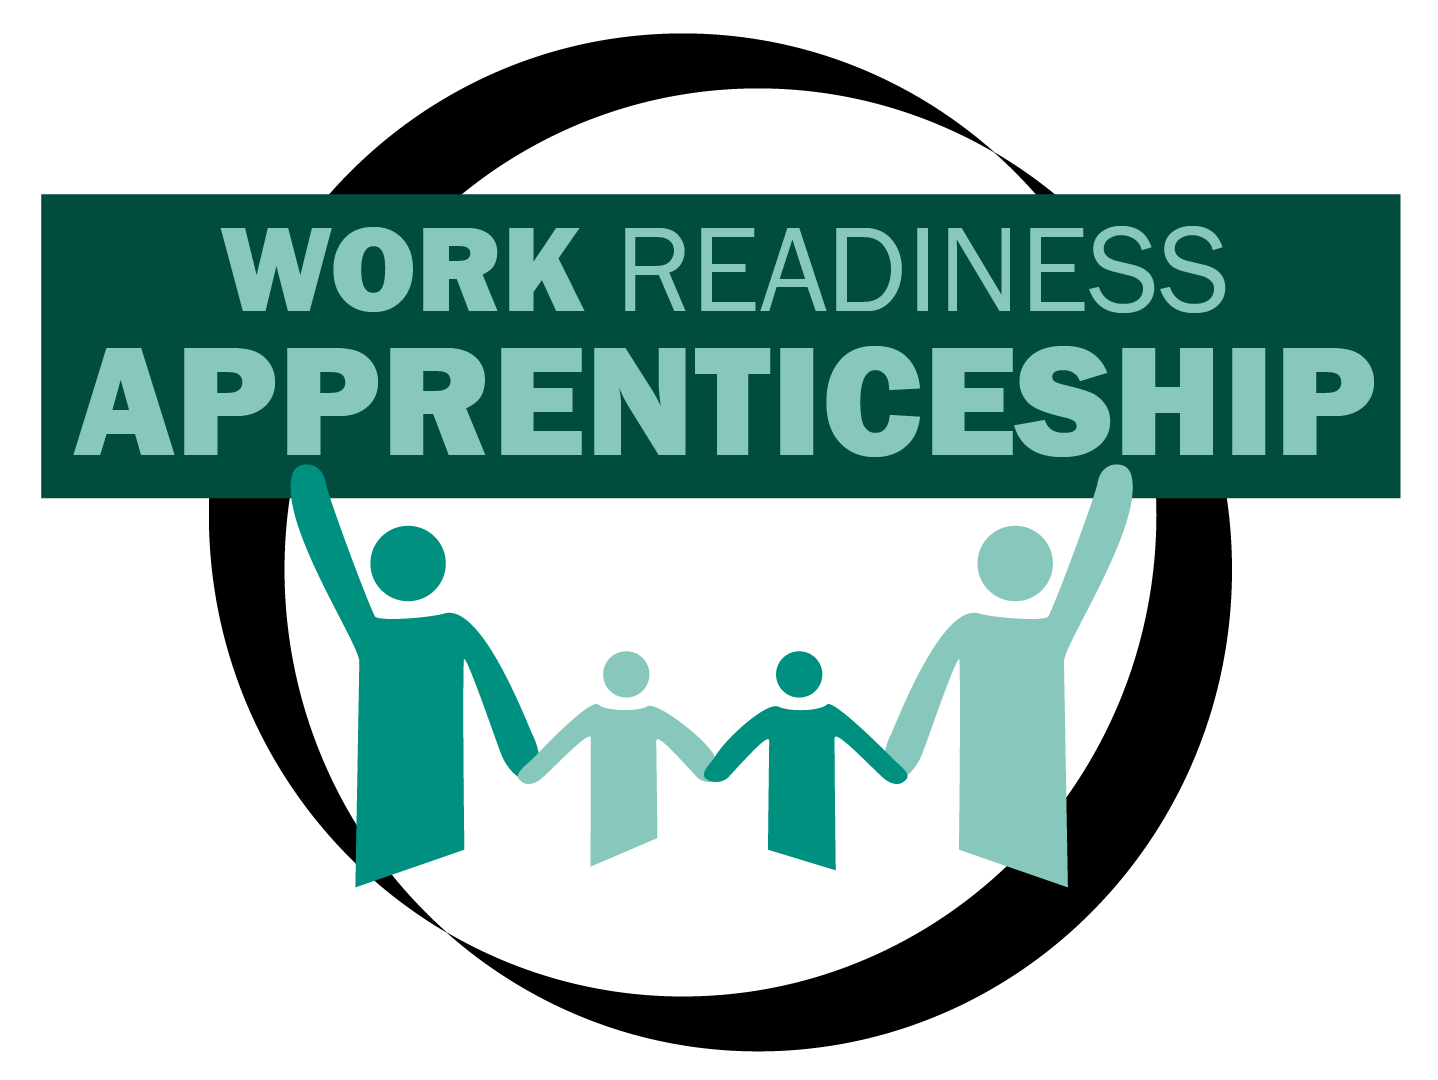 Work Readiness Apprenticeship